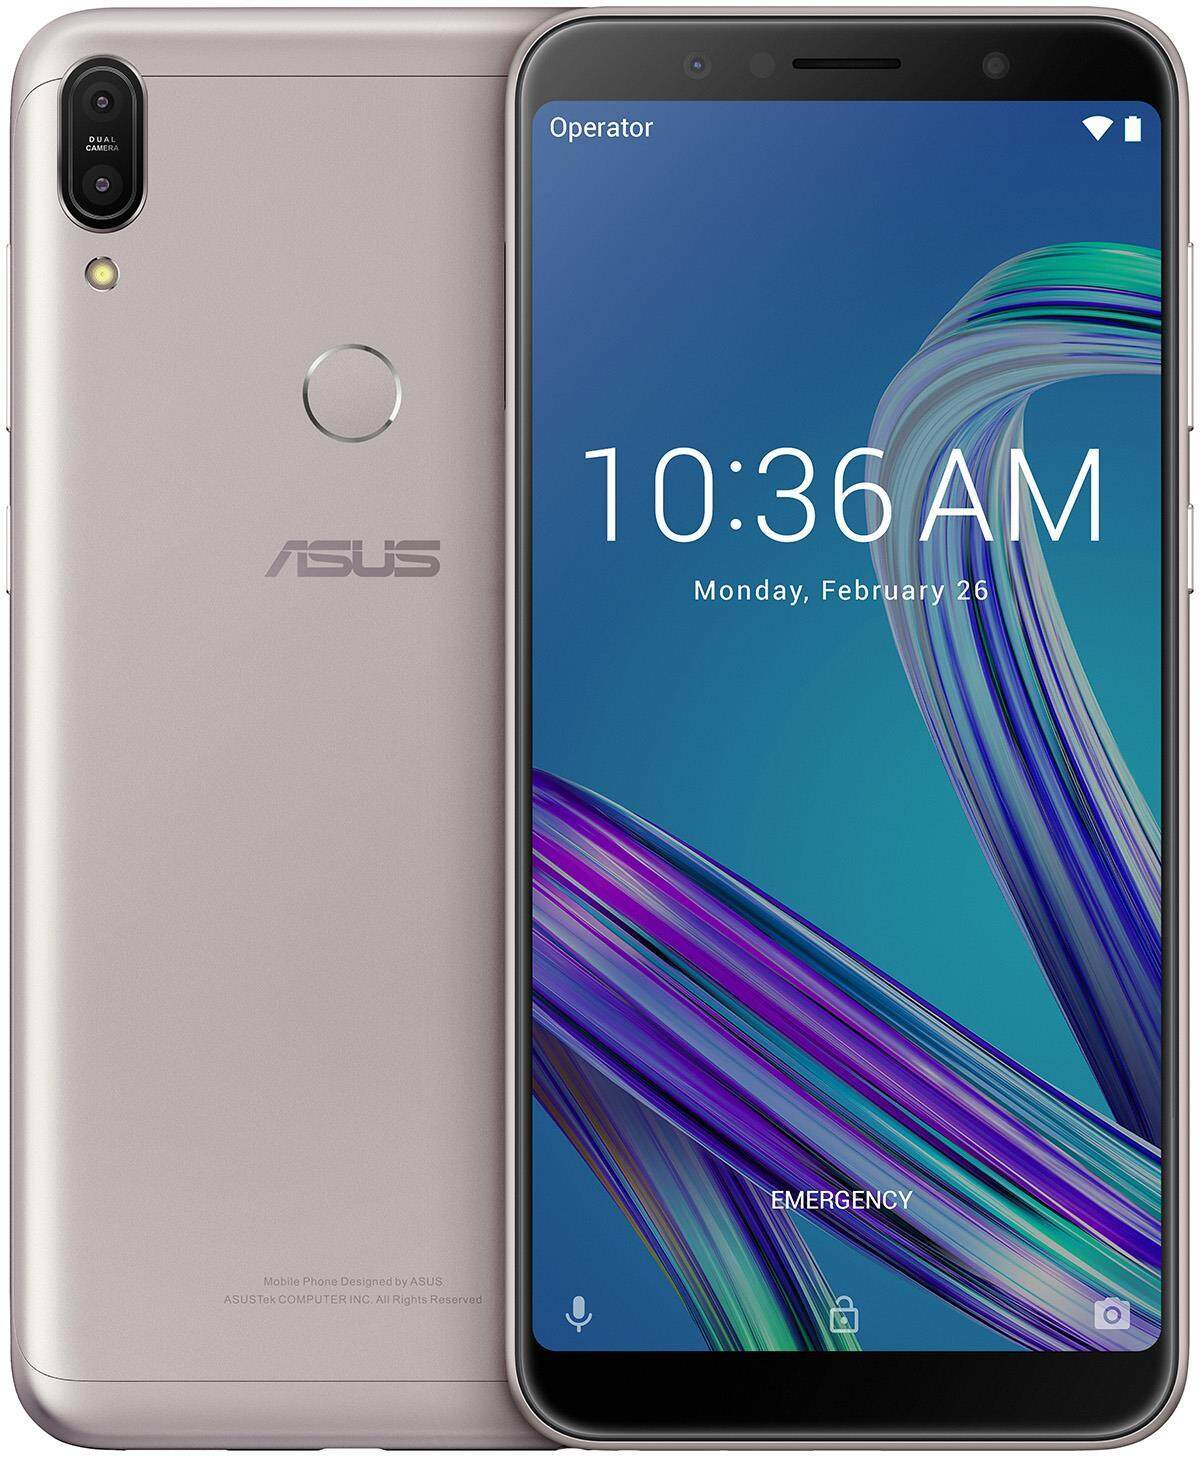 Jual Asus Zenfone 2 Ze551ml 2gb Ram Full Hd 16gb 18ghz Android Polytron S2350 Smartphone Mobiles Tablets